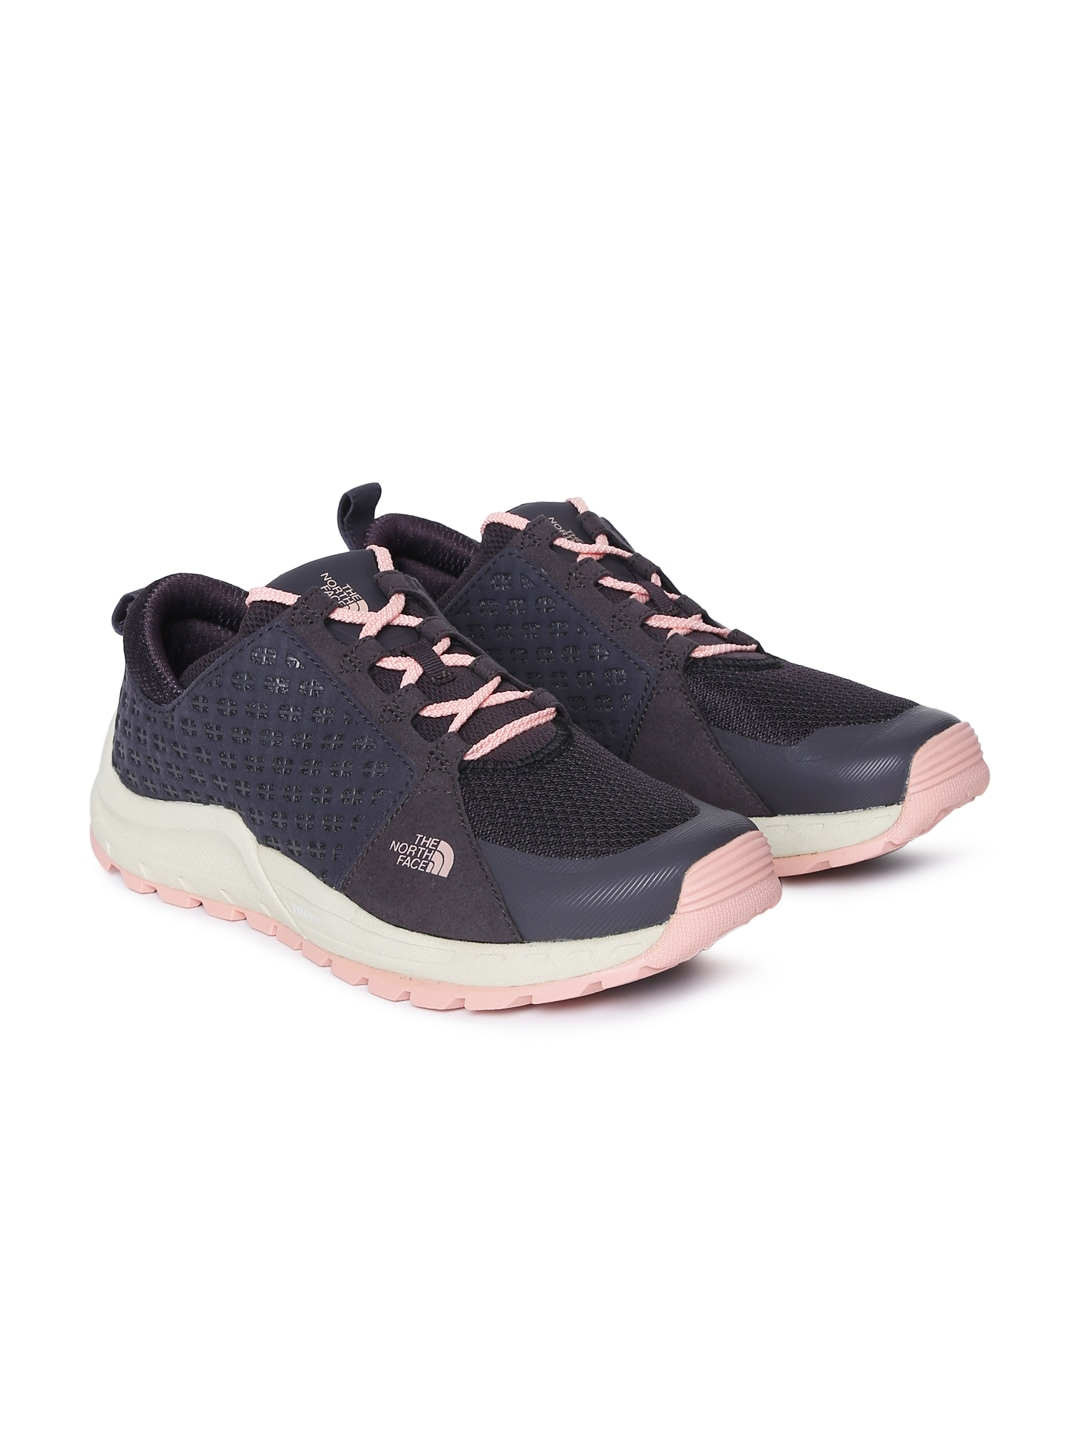 b08a28600 The North Face Women Navy Blue and Pink W MOUNTAIN Trekking Shoes